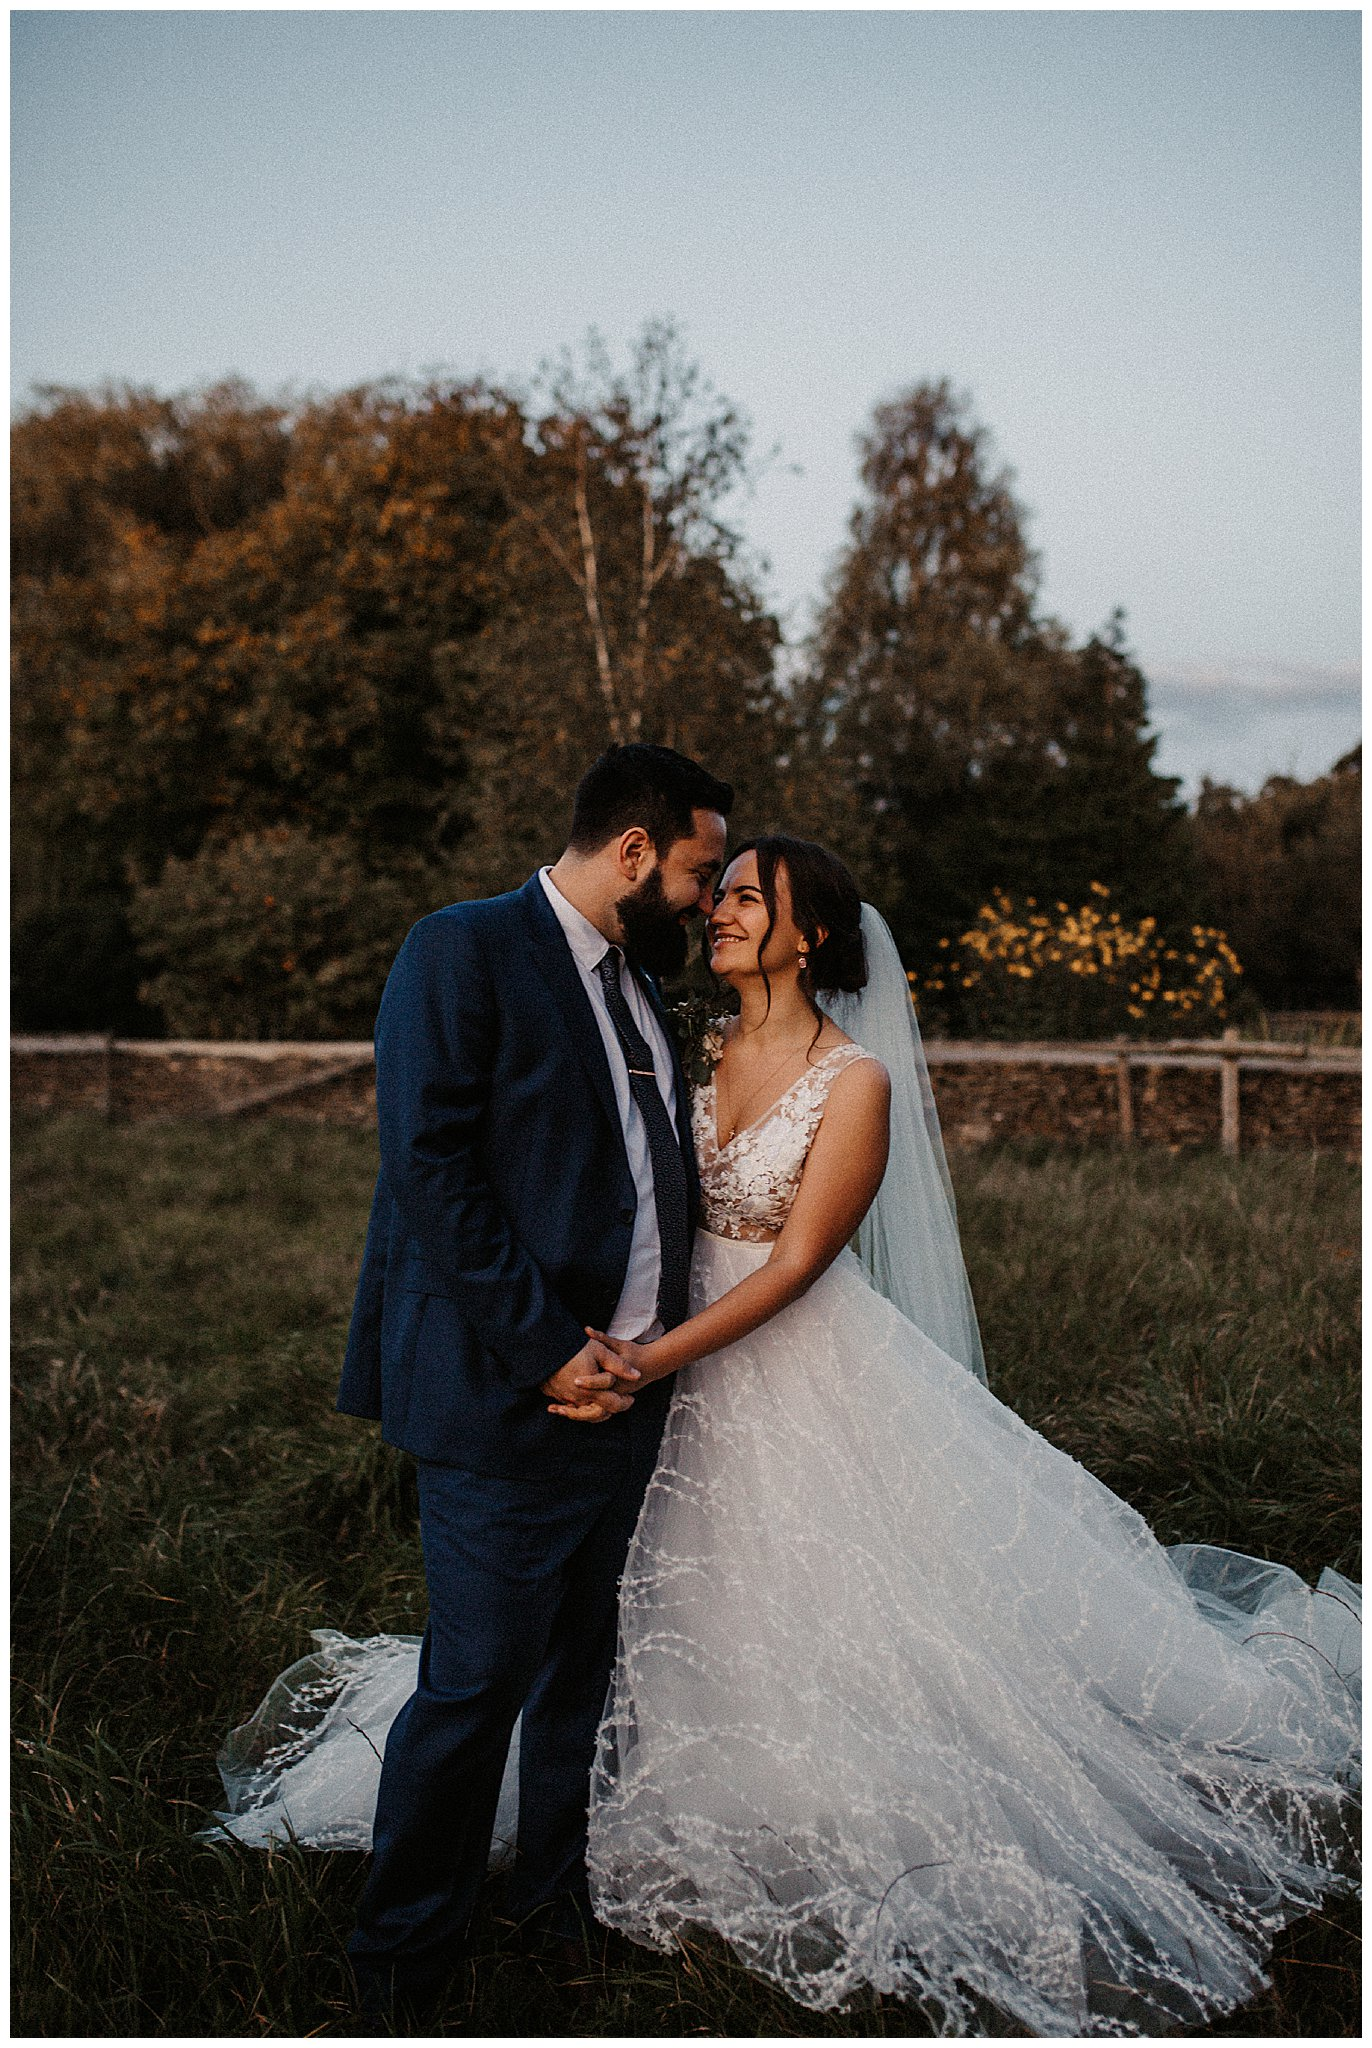 Max & Ksenia Autumnal Wiltshire Wedding-824.jpg